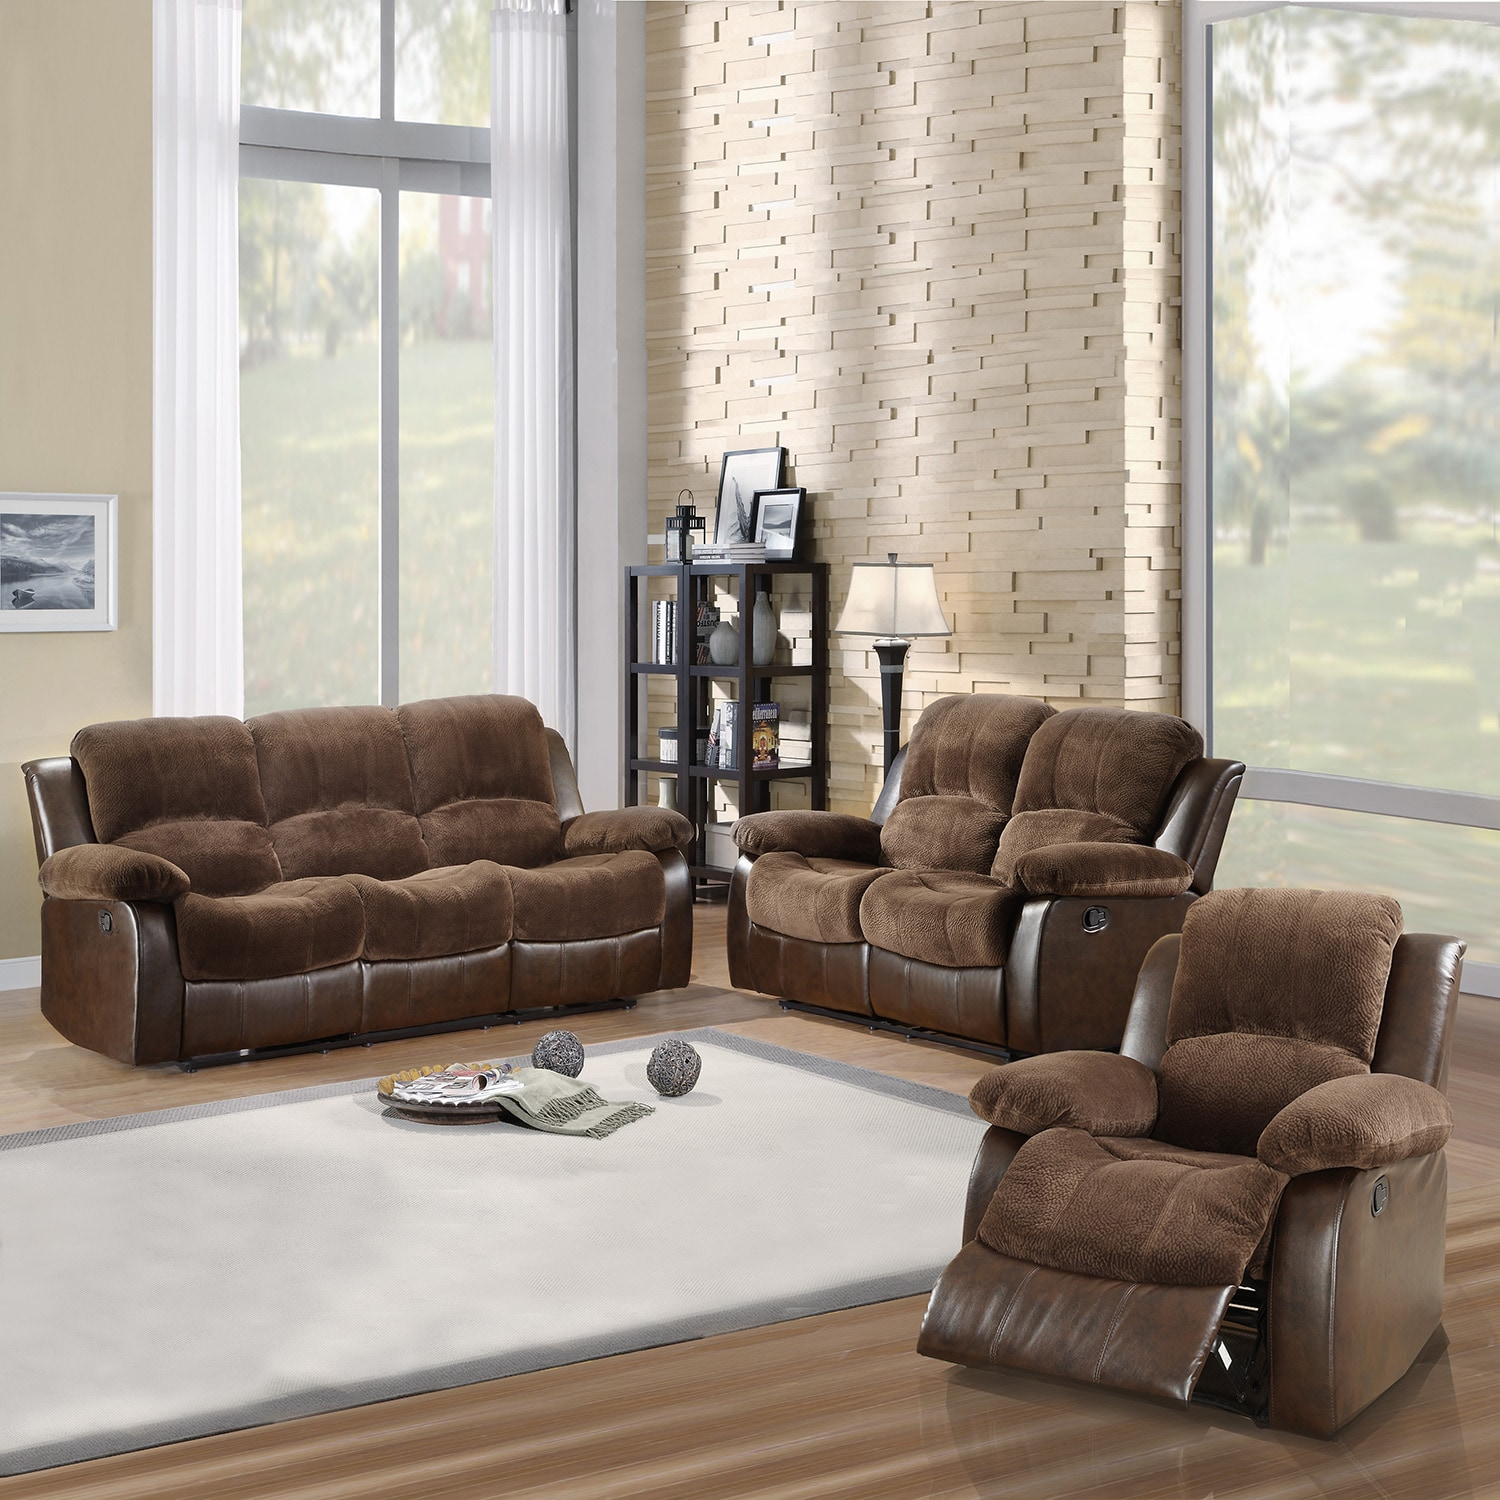 Collection dark brown microfiber vinyl 3 piece living room set